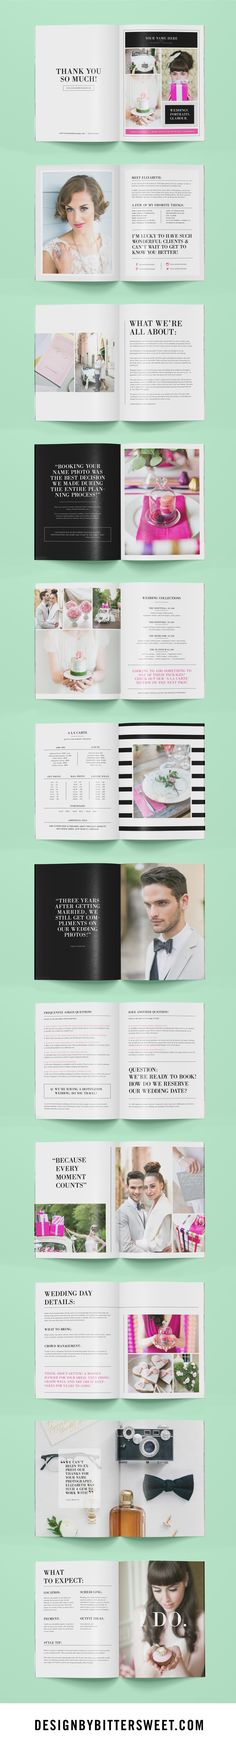 Photography magazine template for wedding photographers, wedding planners, & Photoshop users. Get this 24-page photographer welcome packet with beautiful images by @annelimphoto . This customizable Photoshop template gives your brides & grooms wedding day tips as well helpful information for their engagement & bridal sessions. ...